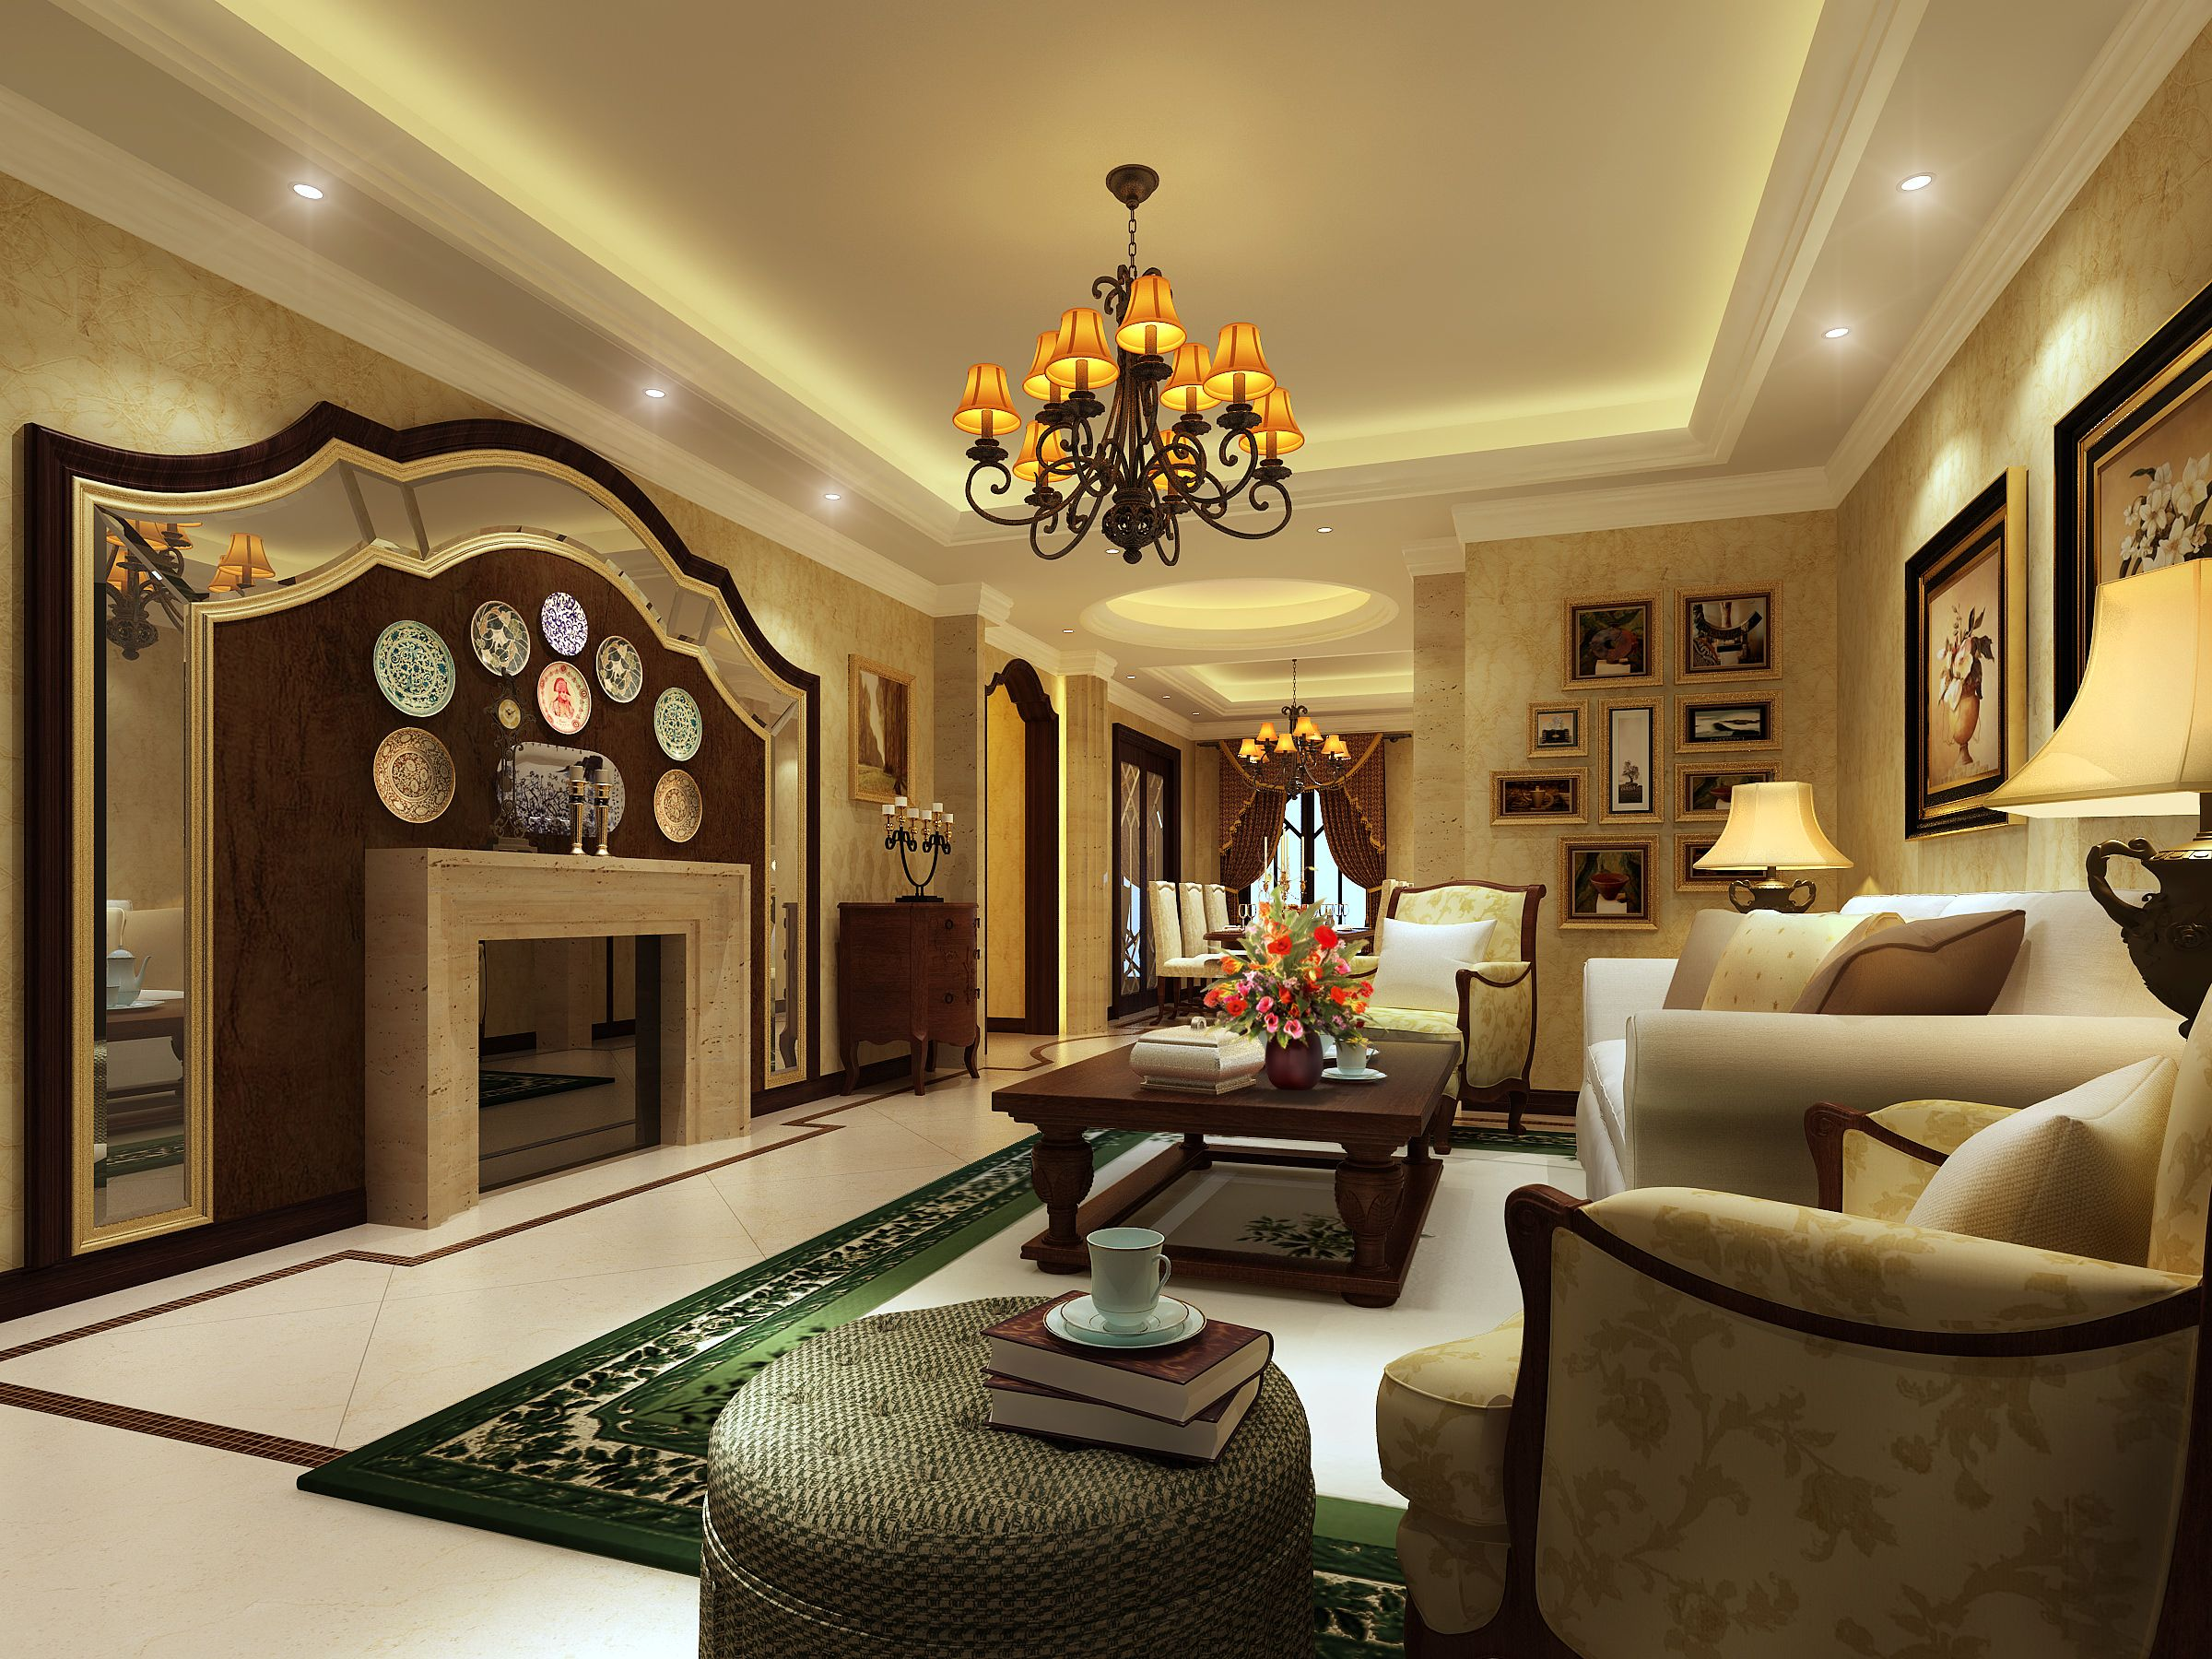 Fantastic Vintage Living Room With Central Fireplace And